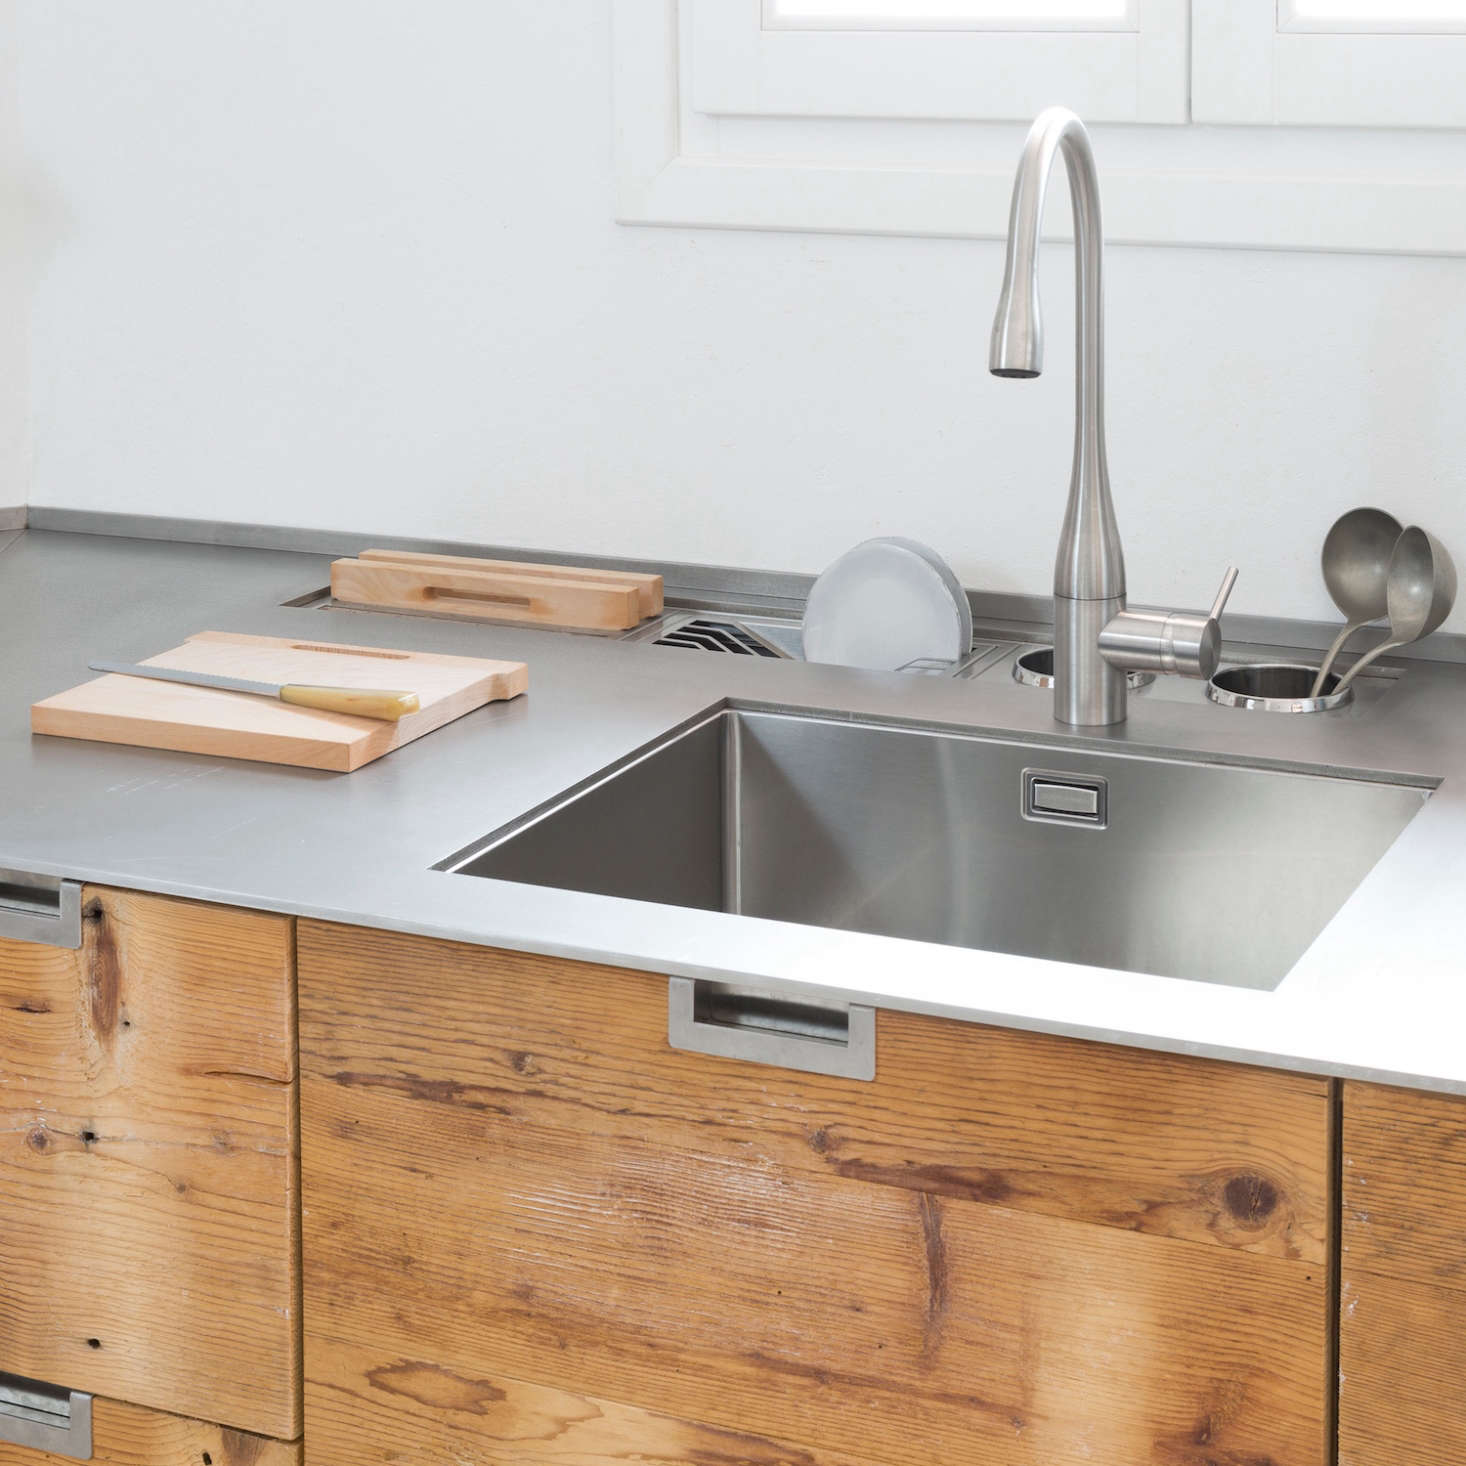 Behind the sink there is a stainless steel clothes horse, a slot for cutting boards and two caddies for kitchen utensils.